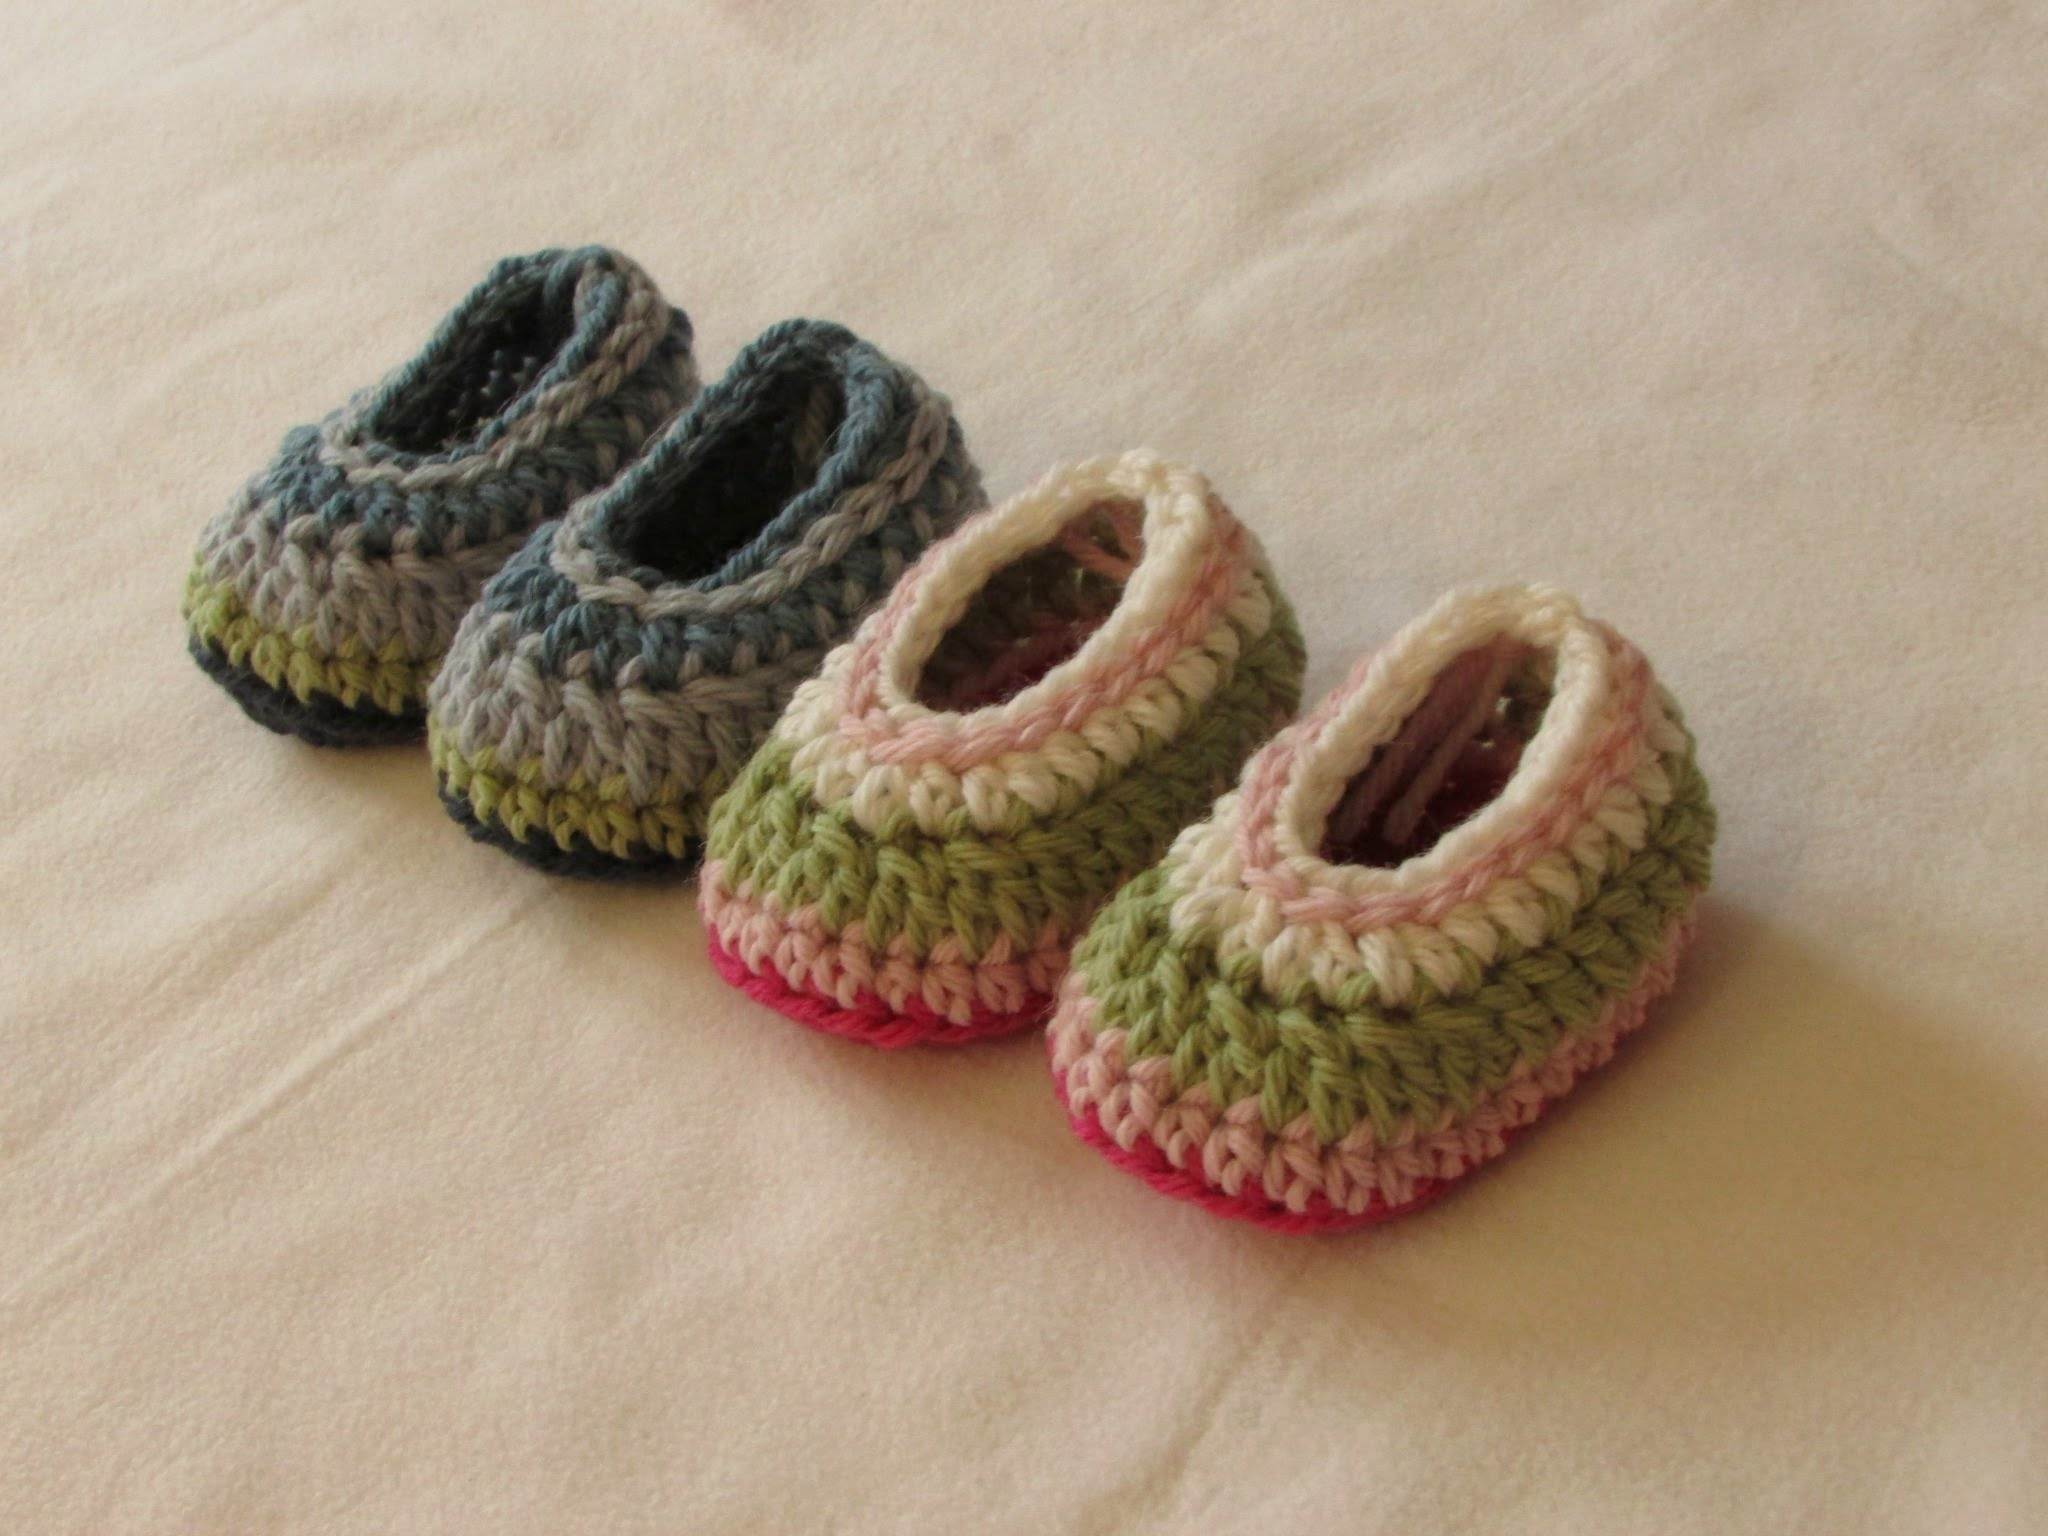 40+ Adorable and FREE Crochet Baby Booties Patterns Making baby gifts with your own hands is the sweetest way to show your love and welcome those new little ones to the world! If you love crocheting, you can create a nice one with some yarn, a crochet hook and a bit of time.